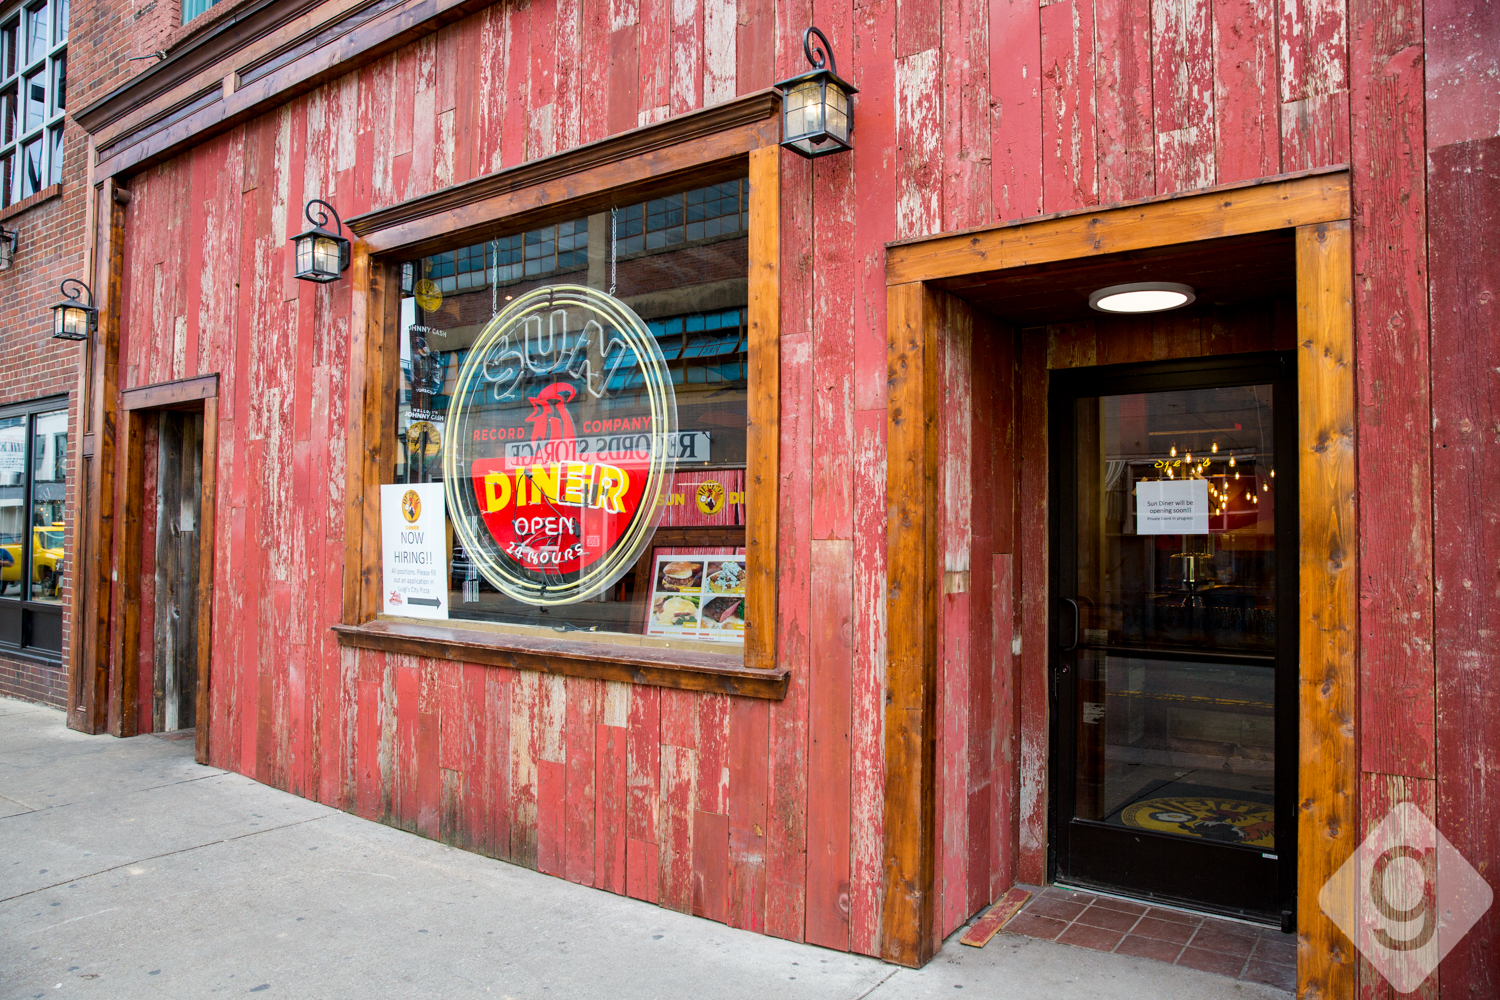 Sun Diner Cafe Is Situated Between The Johnny Cash Museum And Luigis Pizza It Has A Rustic Red Exterior Large Light In Window